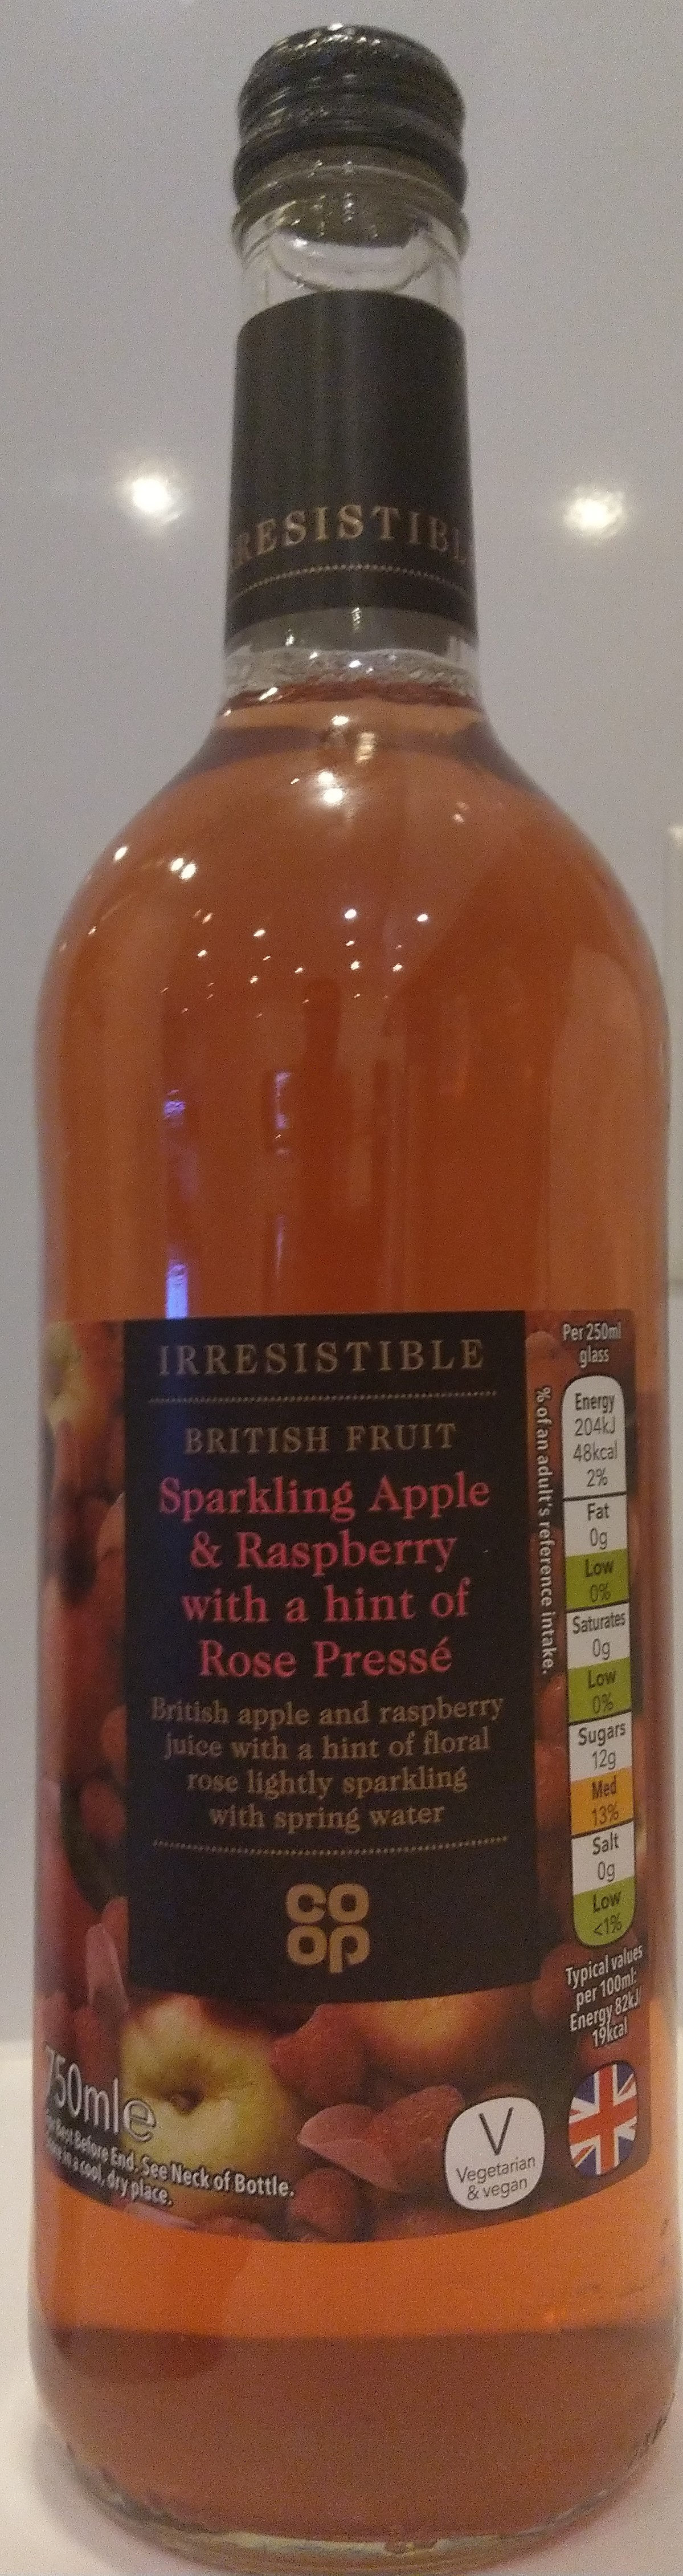 Irresistible Sparkling Apple & Raspberry with a hint of Rose Pressé - Product